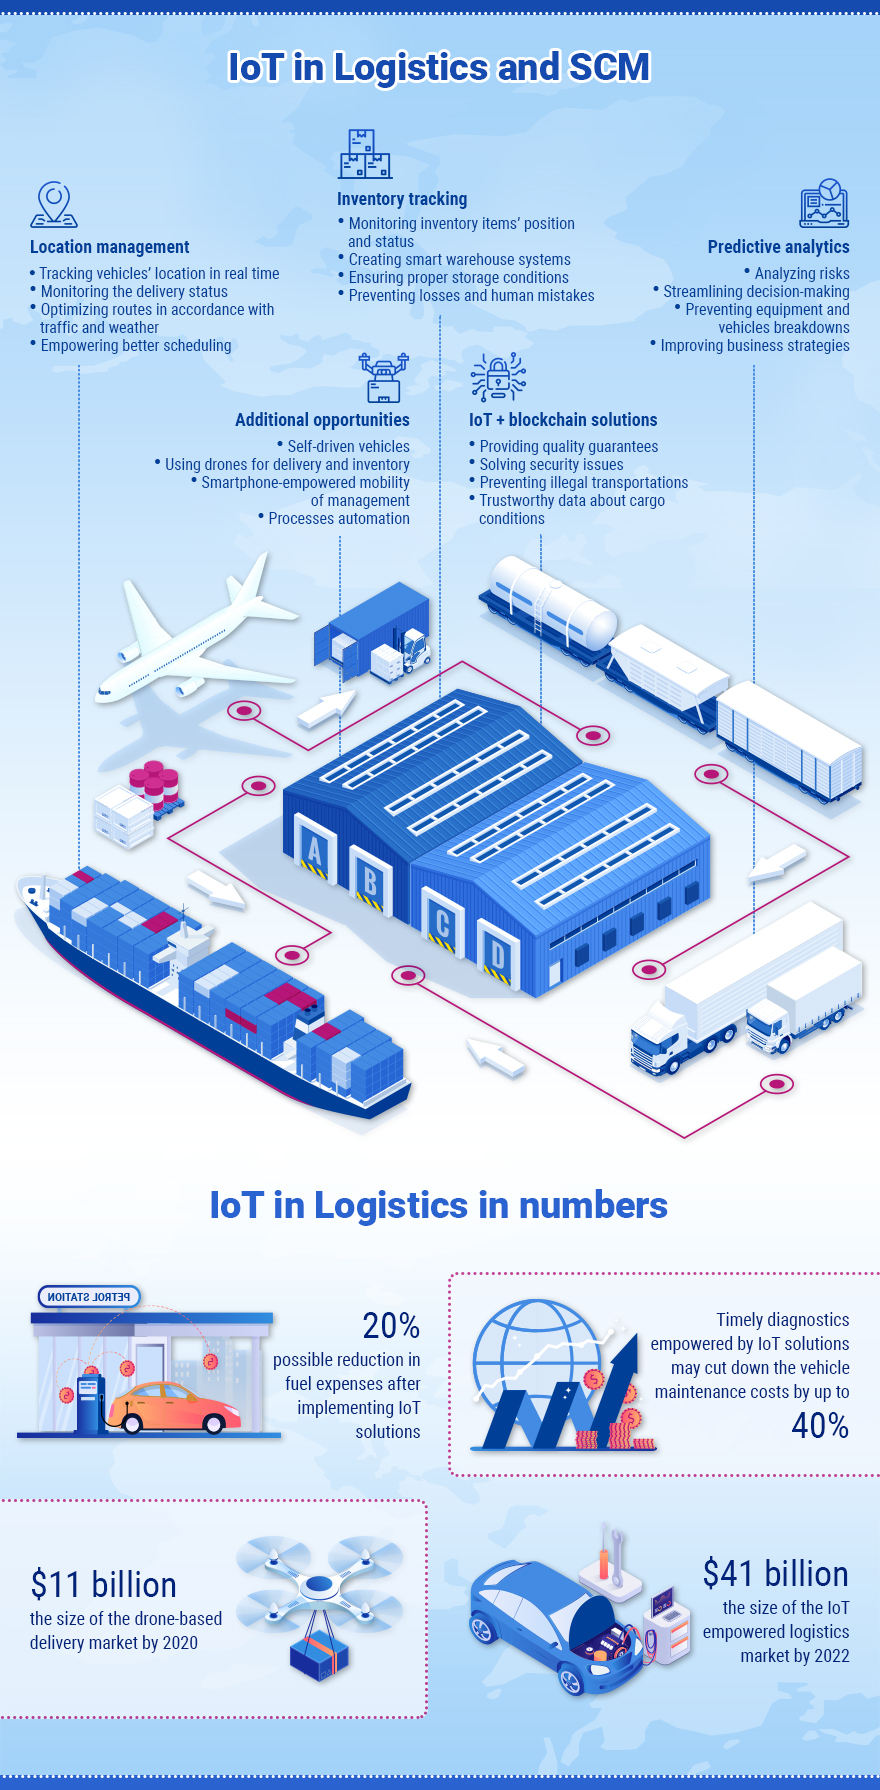 11 - iot-in-logistic.jpg